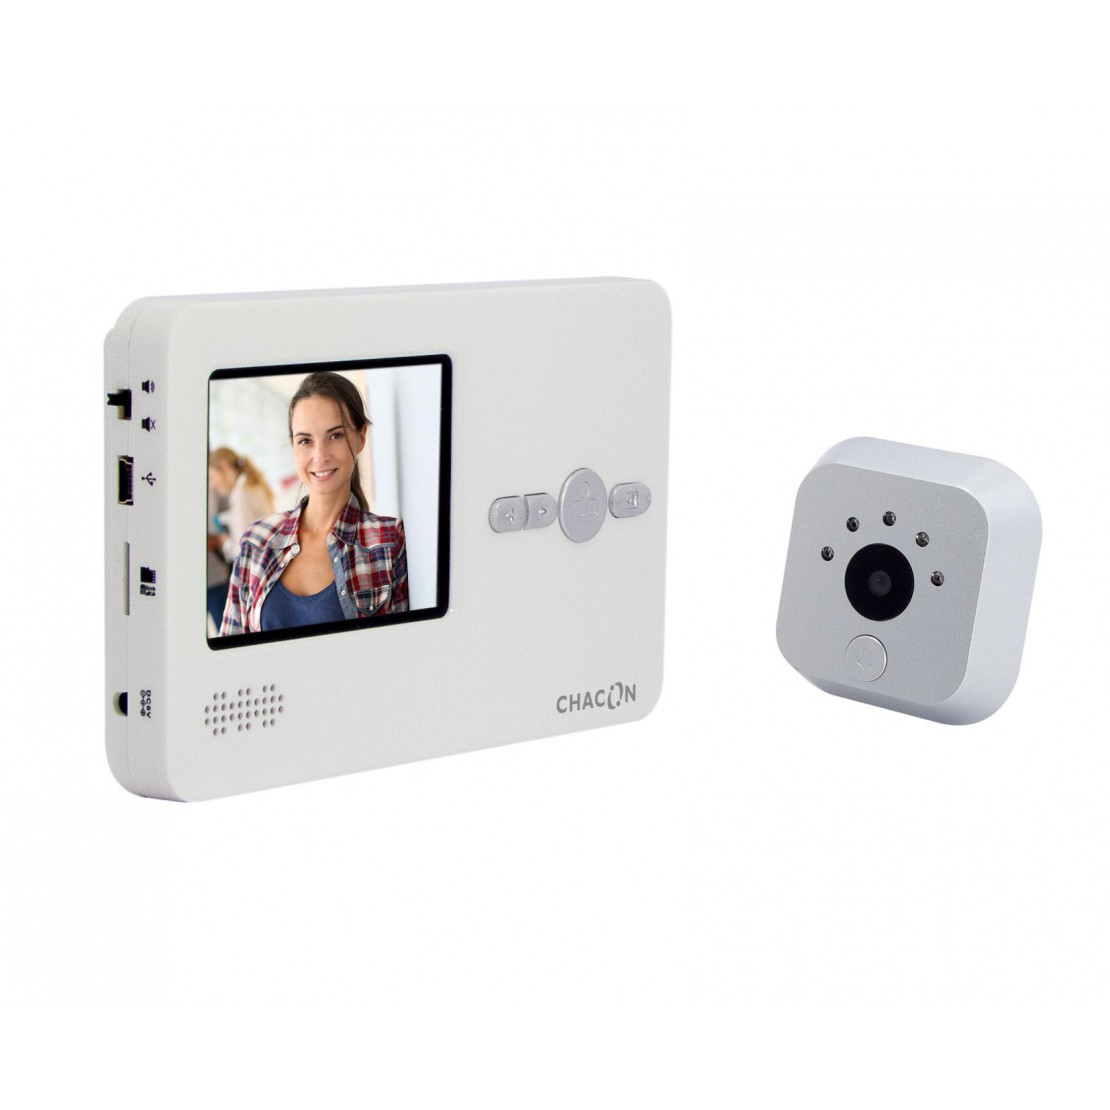 "Digital peephole with 2.8"" LCD screen"